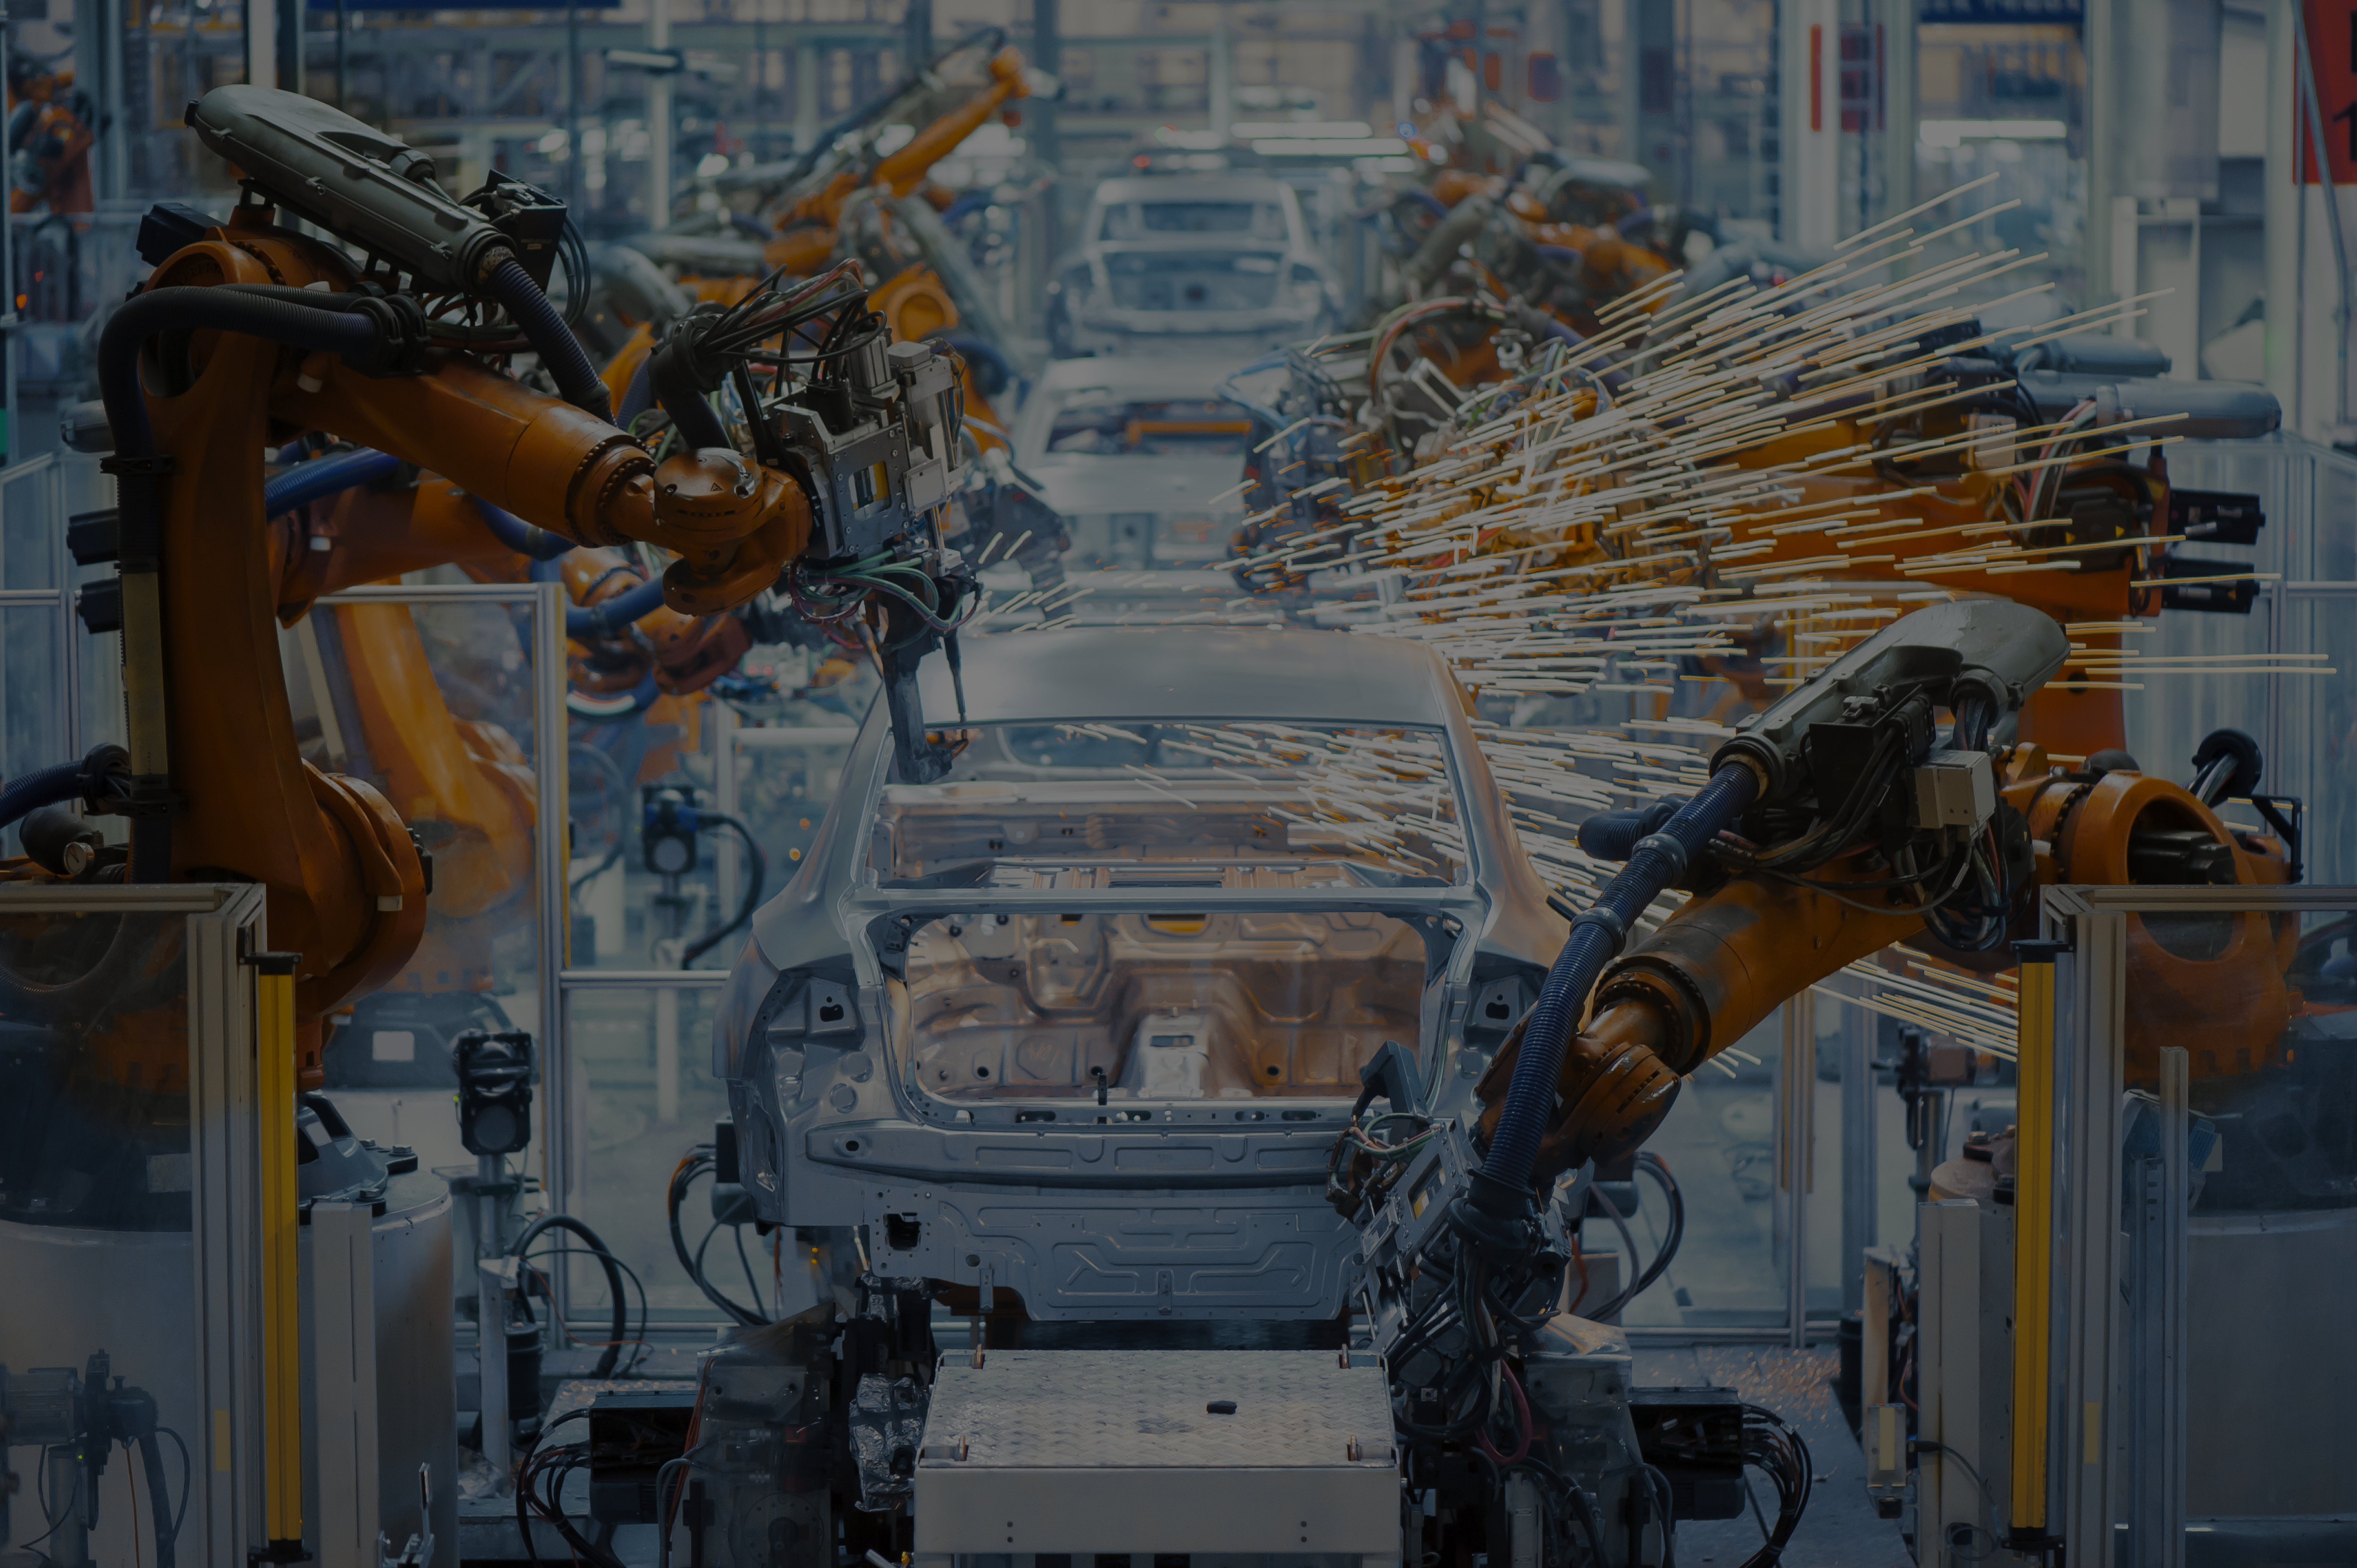 Automation – Creating New Risks?